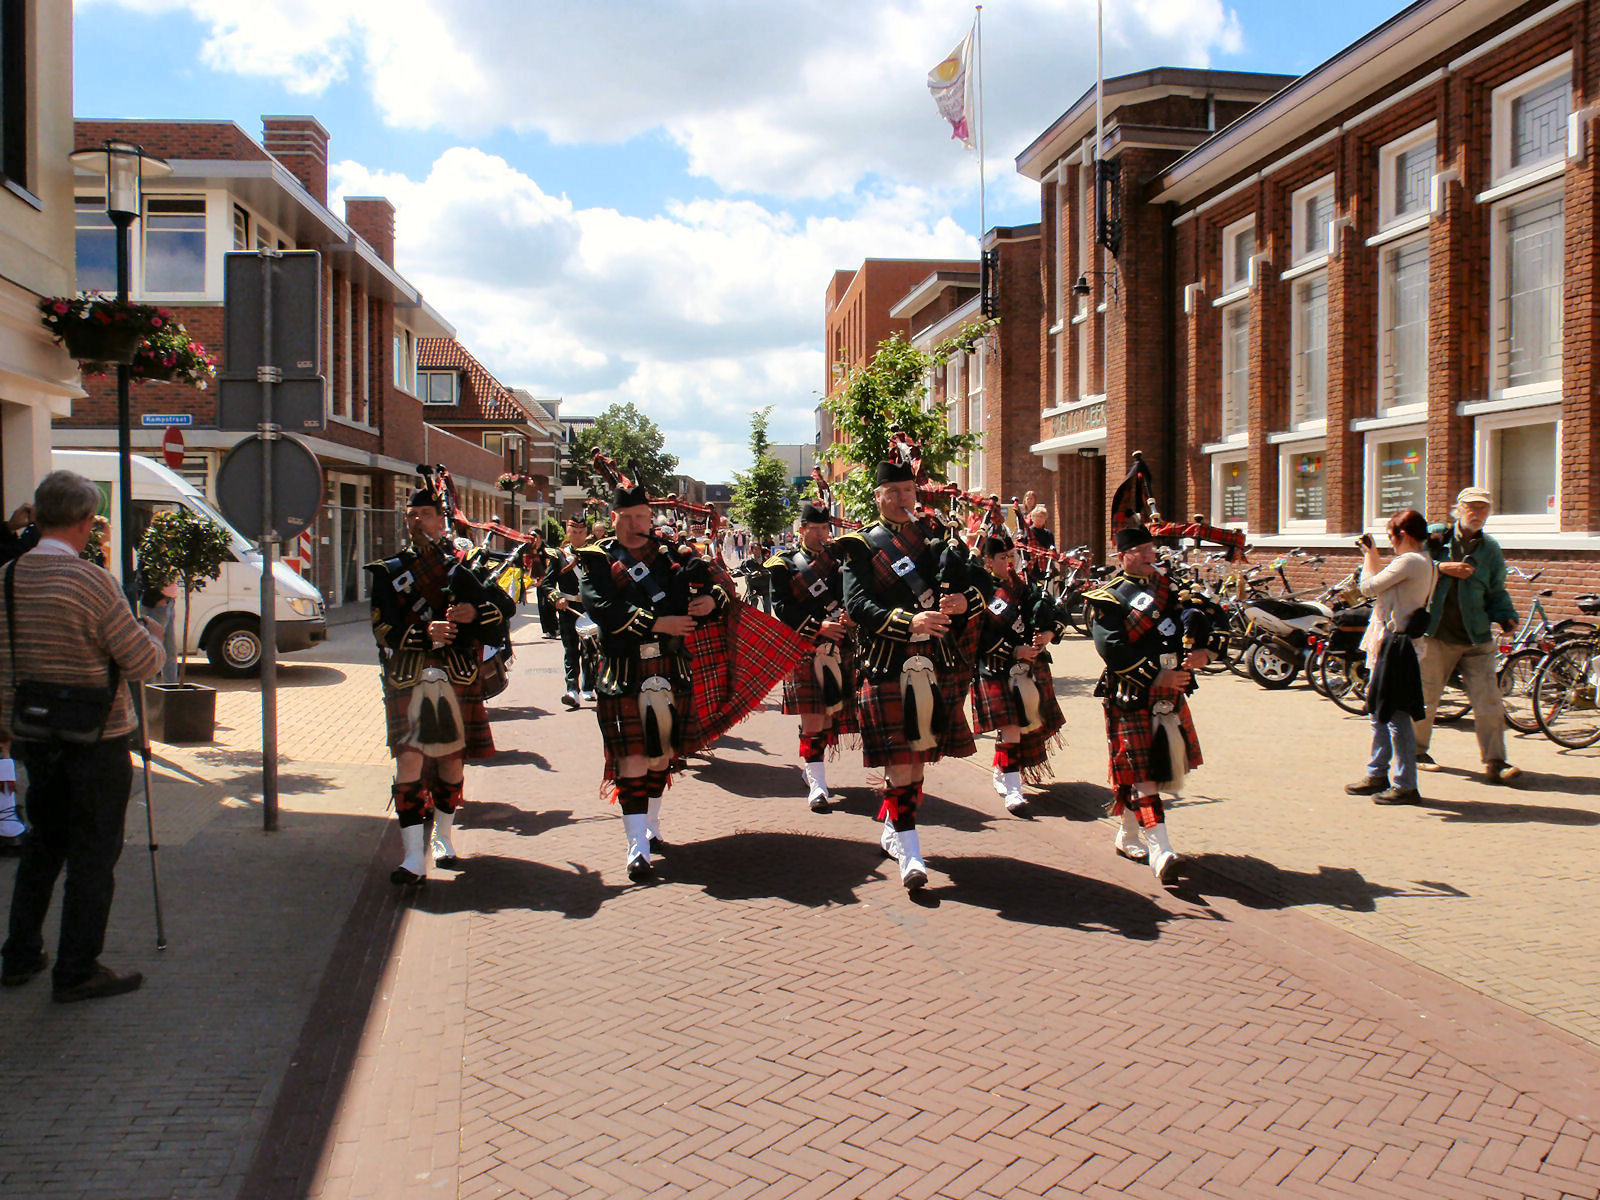 The Pipes Drums Of The Royal British Legion The Netherlands